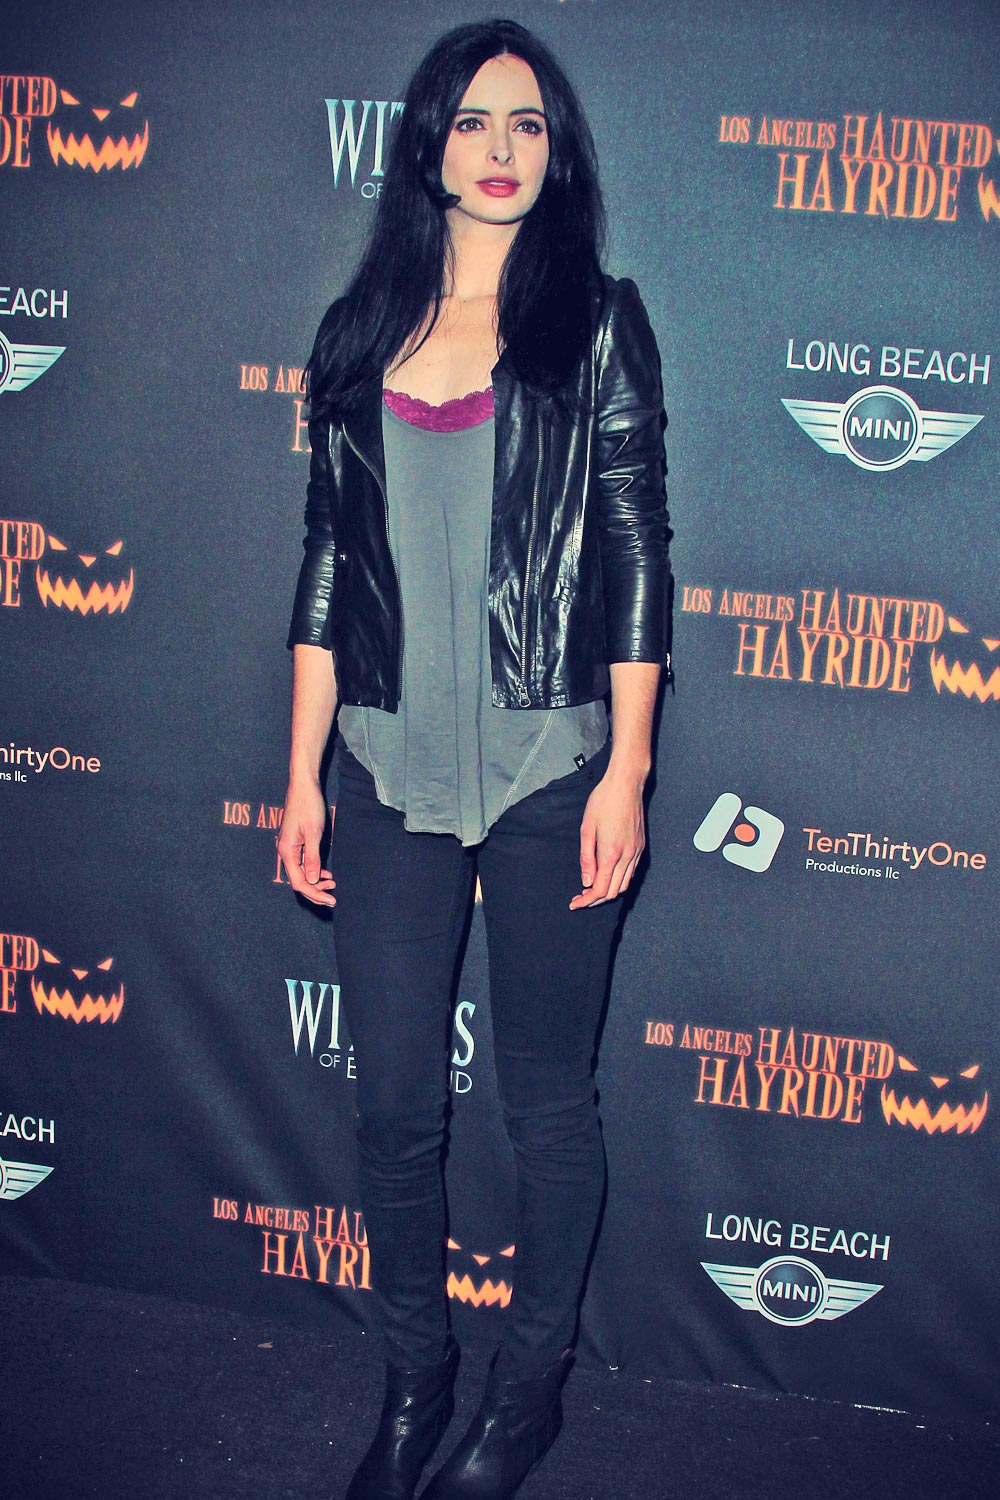 Krysten Ritter attneds 5th Annual Los Angeles Haunted Hayride opening night